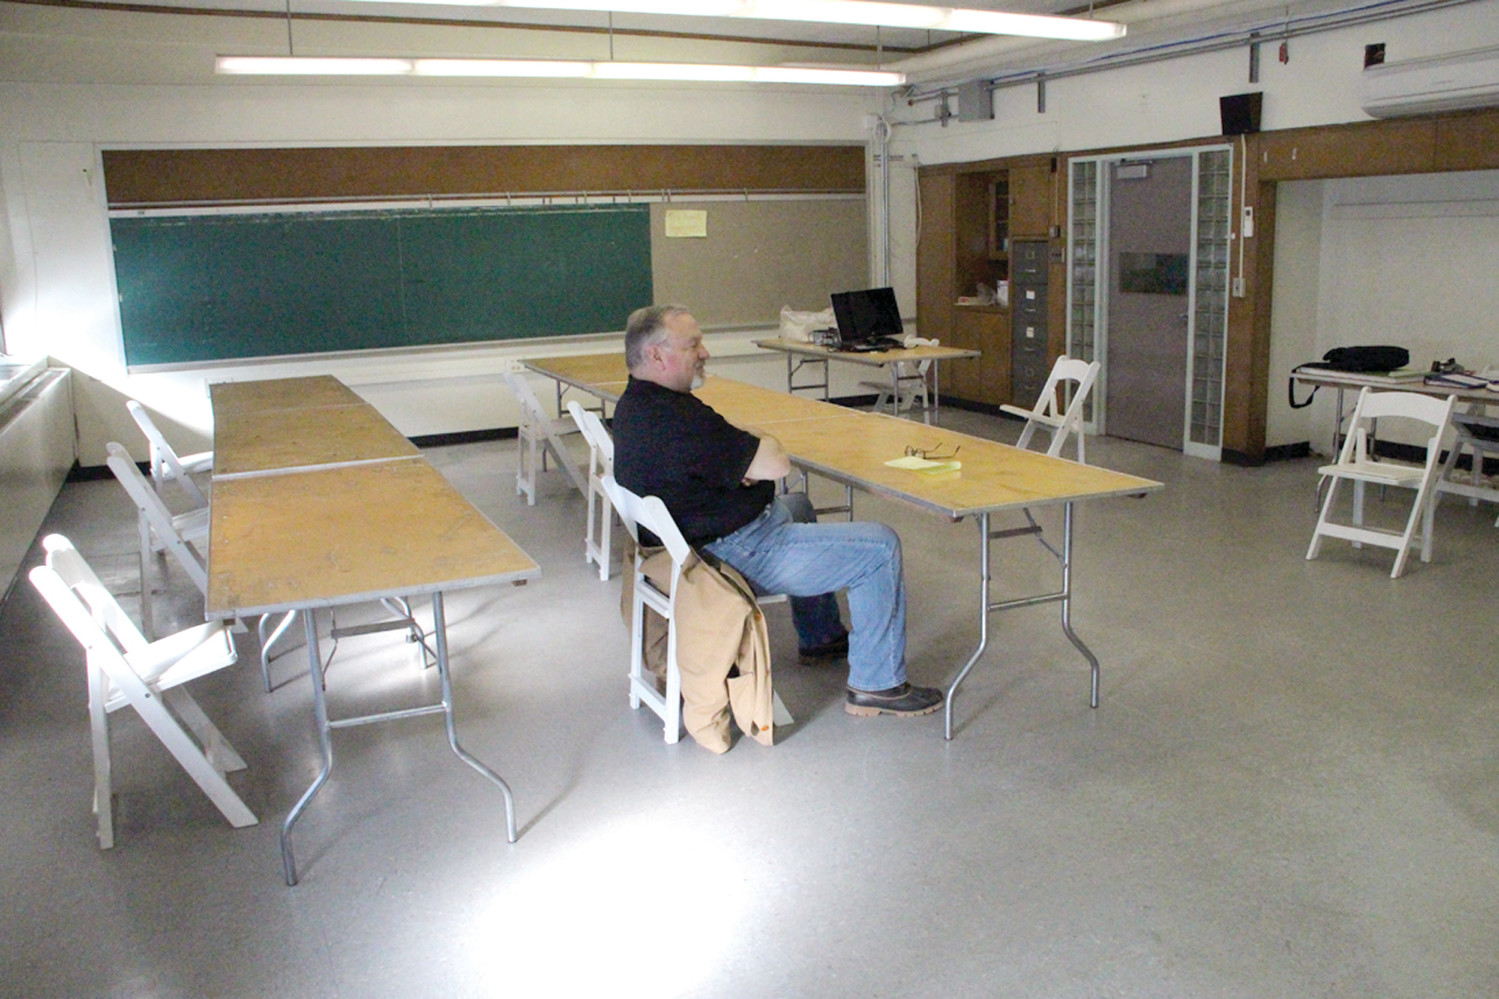 BACK IN CLASS: DPW director Richard Crenca takes a break while assisting with the move of Annex office to Greene School.